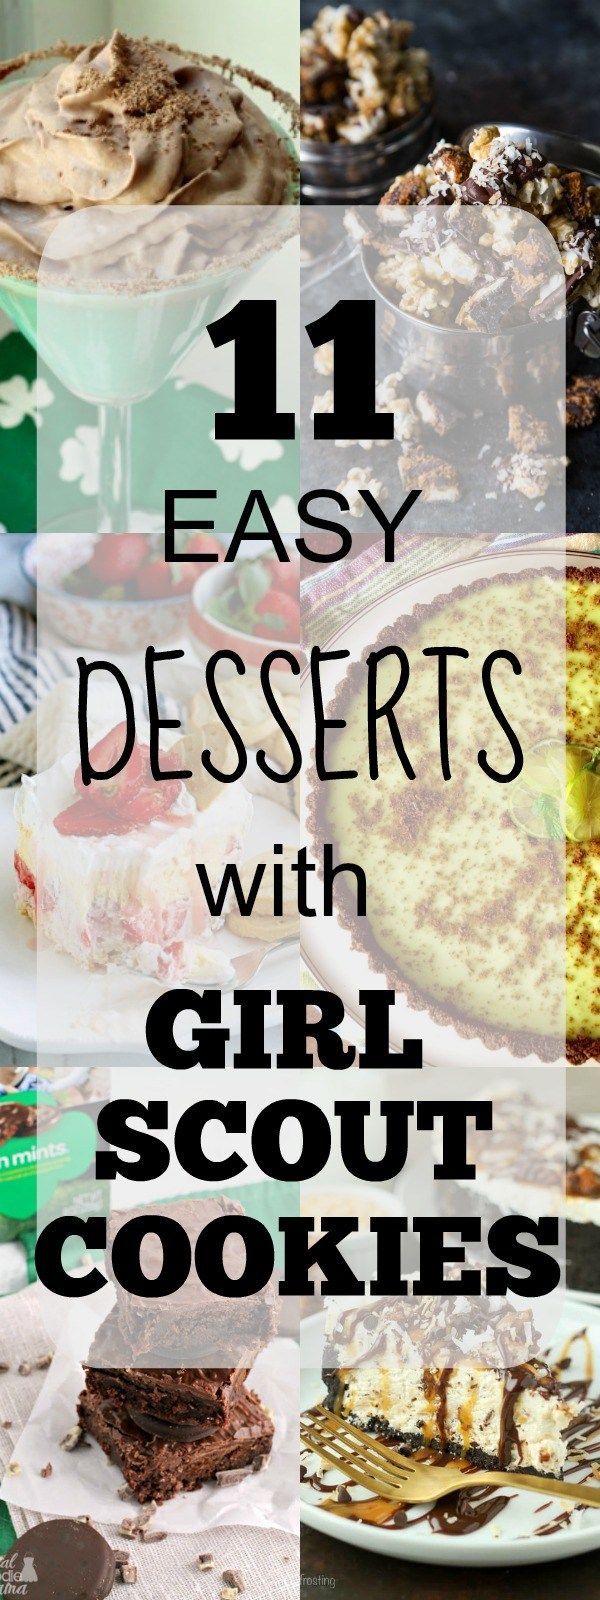 Girl Scout Cookie Recipes, 11 easy recipes that use different flavors of Girl Scout Cookies including Thin Mints, Tagalongs, and Samoas. Also a list of Girl Scout cookie flavors and where to buy Girl Scout cookies. #GirlScoutCookies #Dessert #Recipes #SnappyGourmet #ThinMints #Samoas #Tagalongs #Cookies